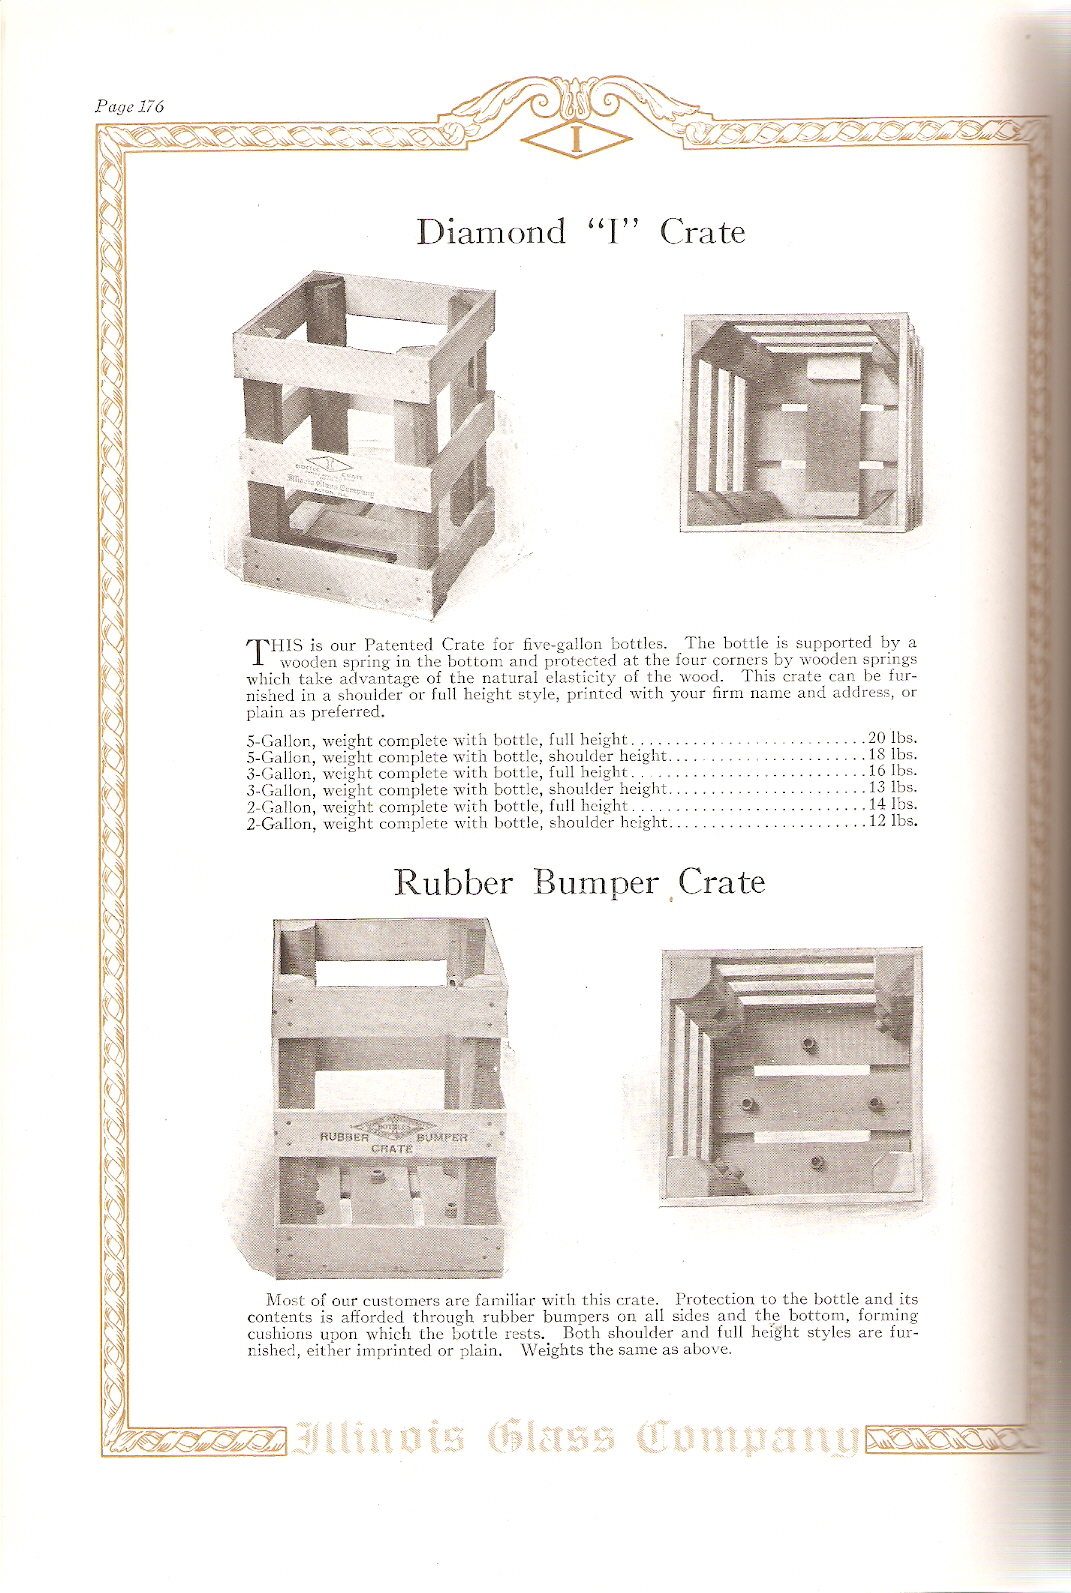 Illinois Glass Co Catalog 1926 Water Bottle Crates.jpg